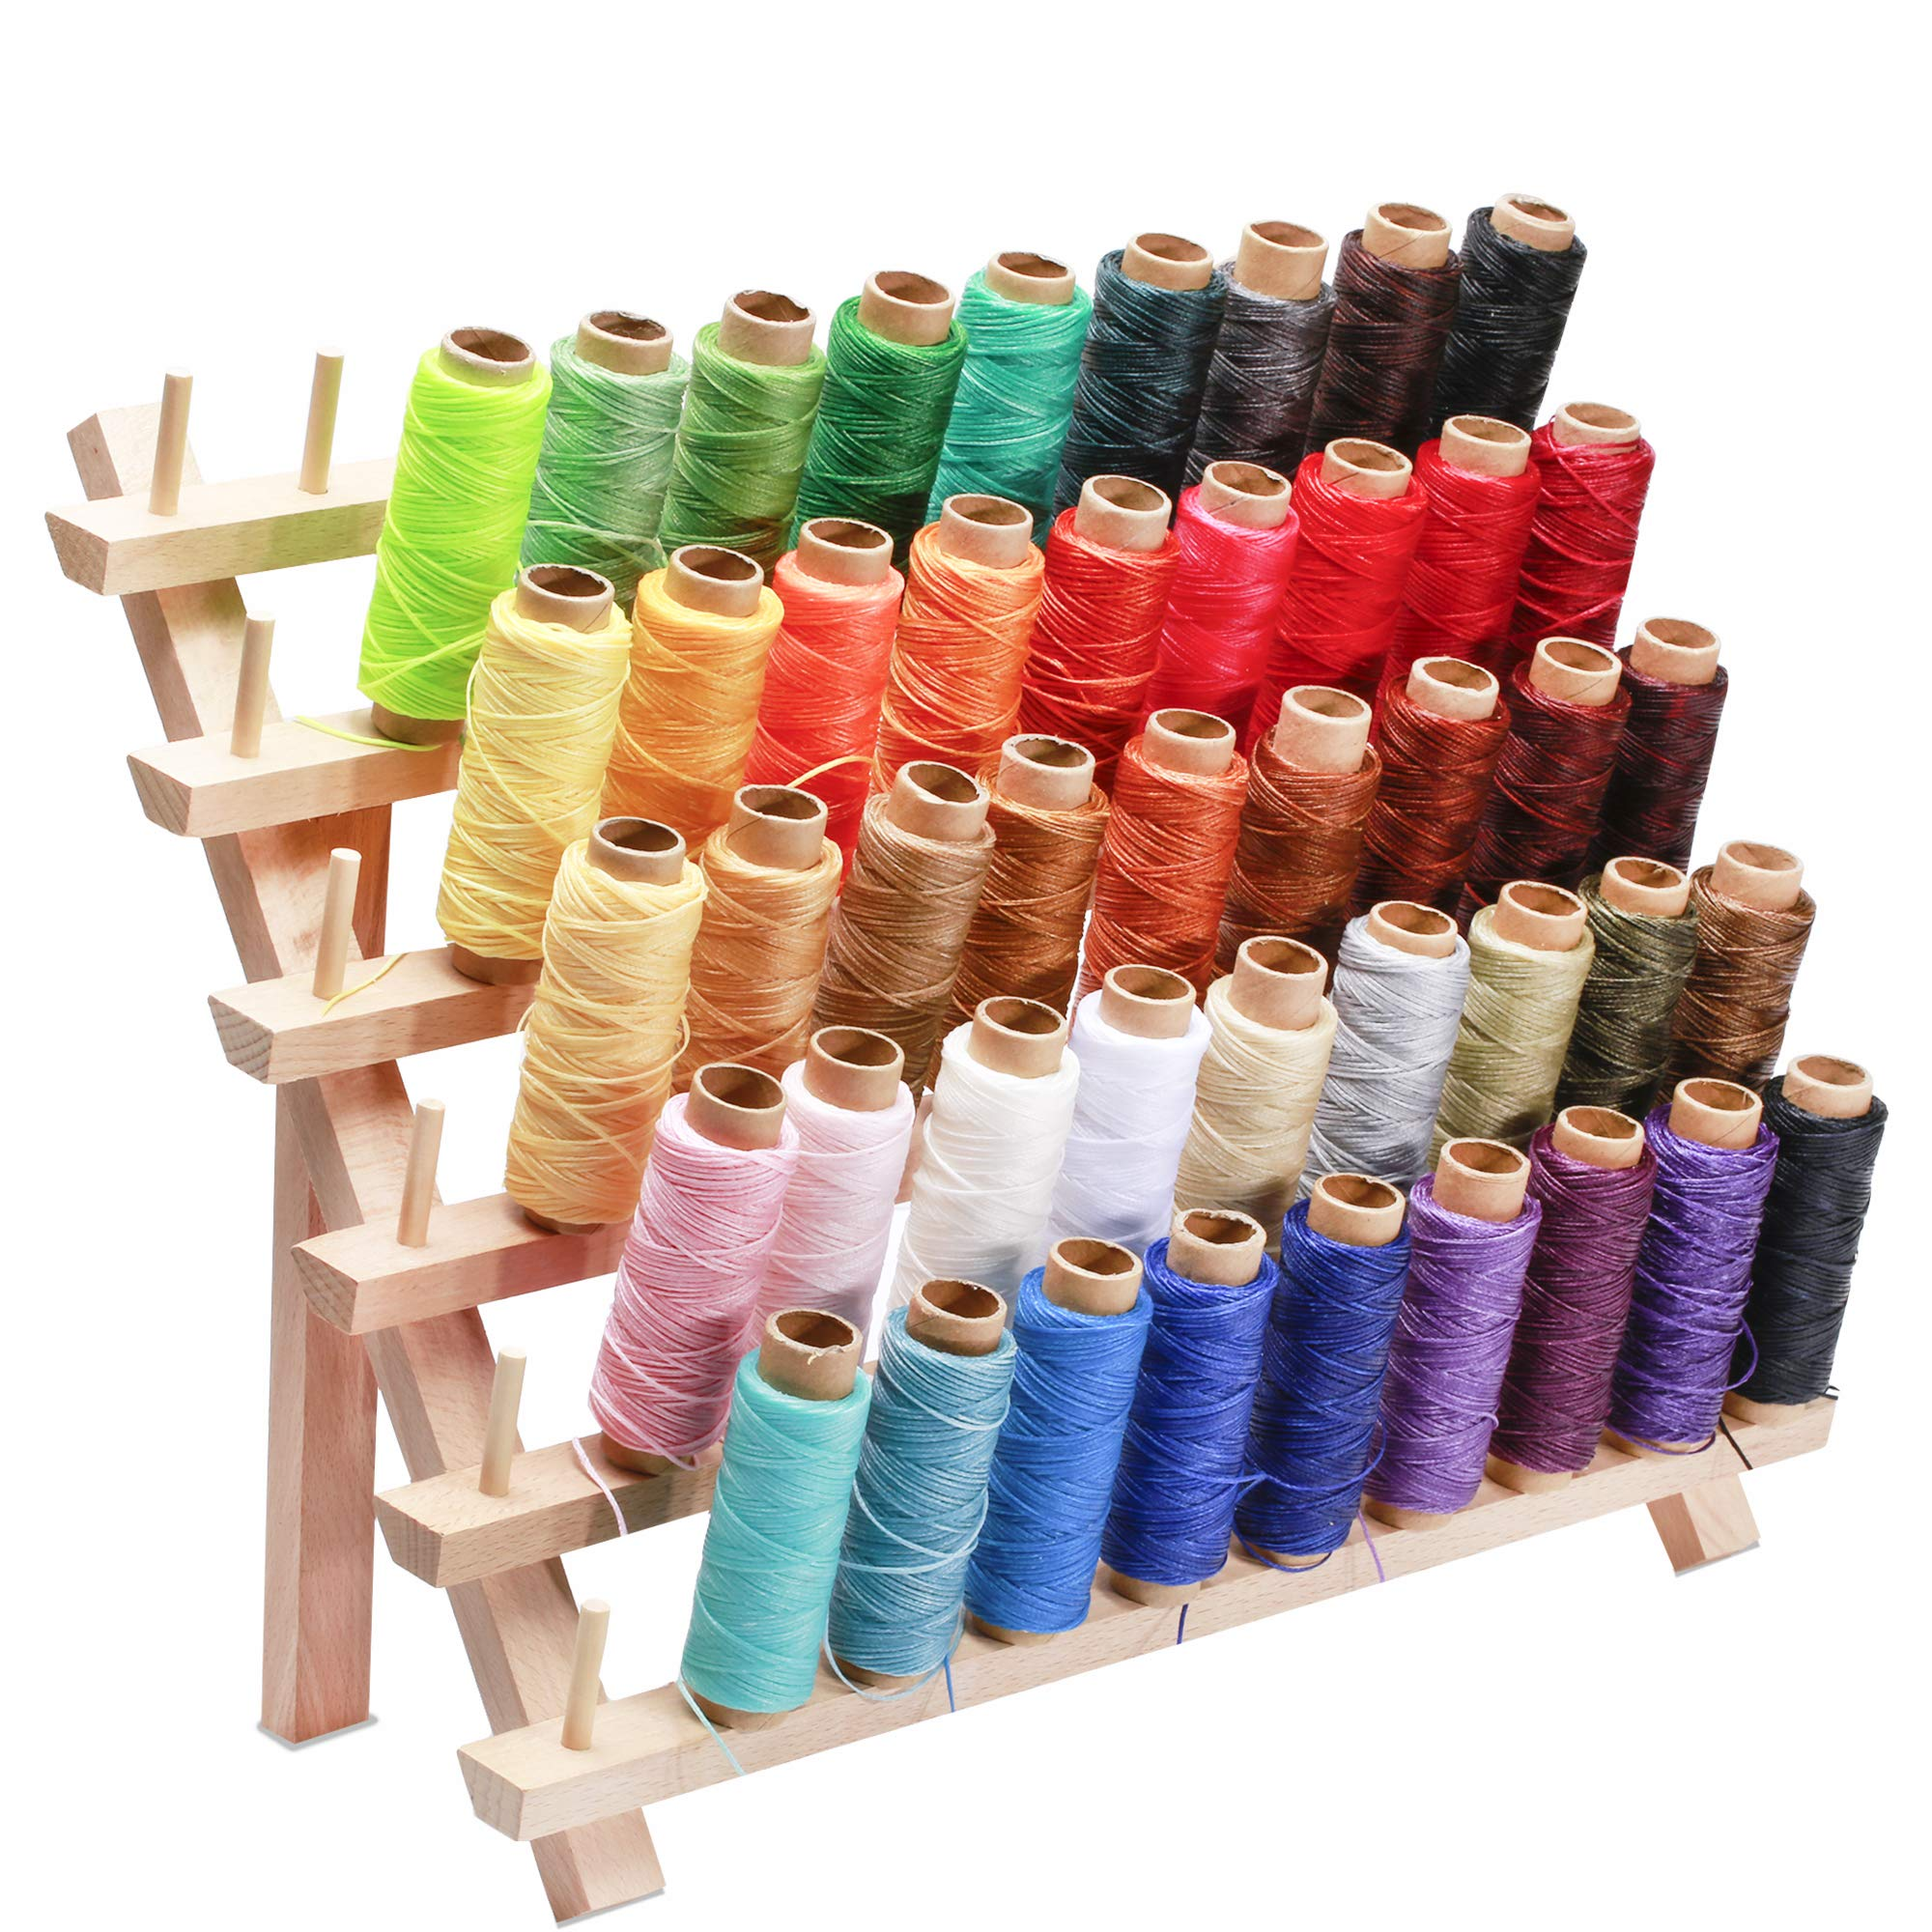 Jupean 46 Colors Leather Waxed Thread with Thread Holder,Thread for Leather Sewing Waxed Cord Thread and 60 Wooden Thread Rack Leather Sewing Waxed Thread Cord for Leather Craft DIY,Each of 55 Yards by Jupean